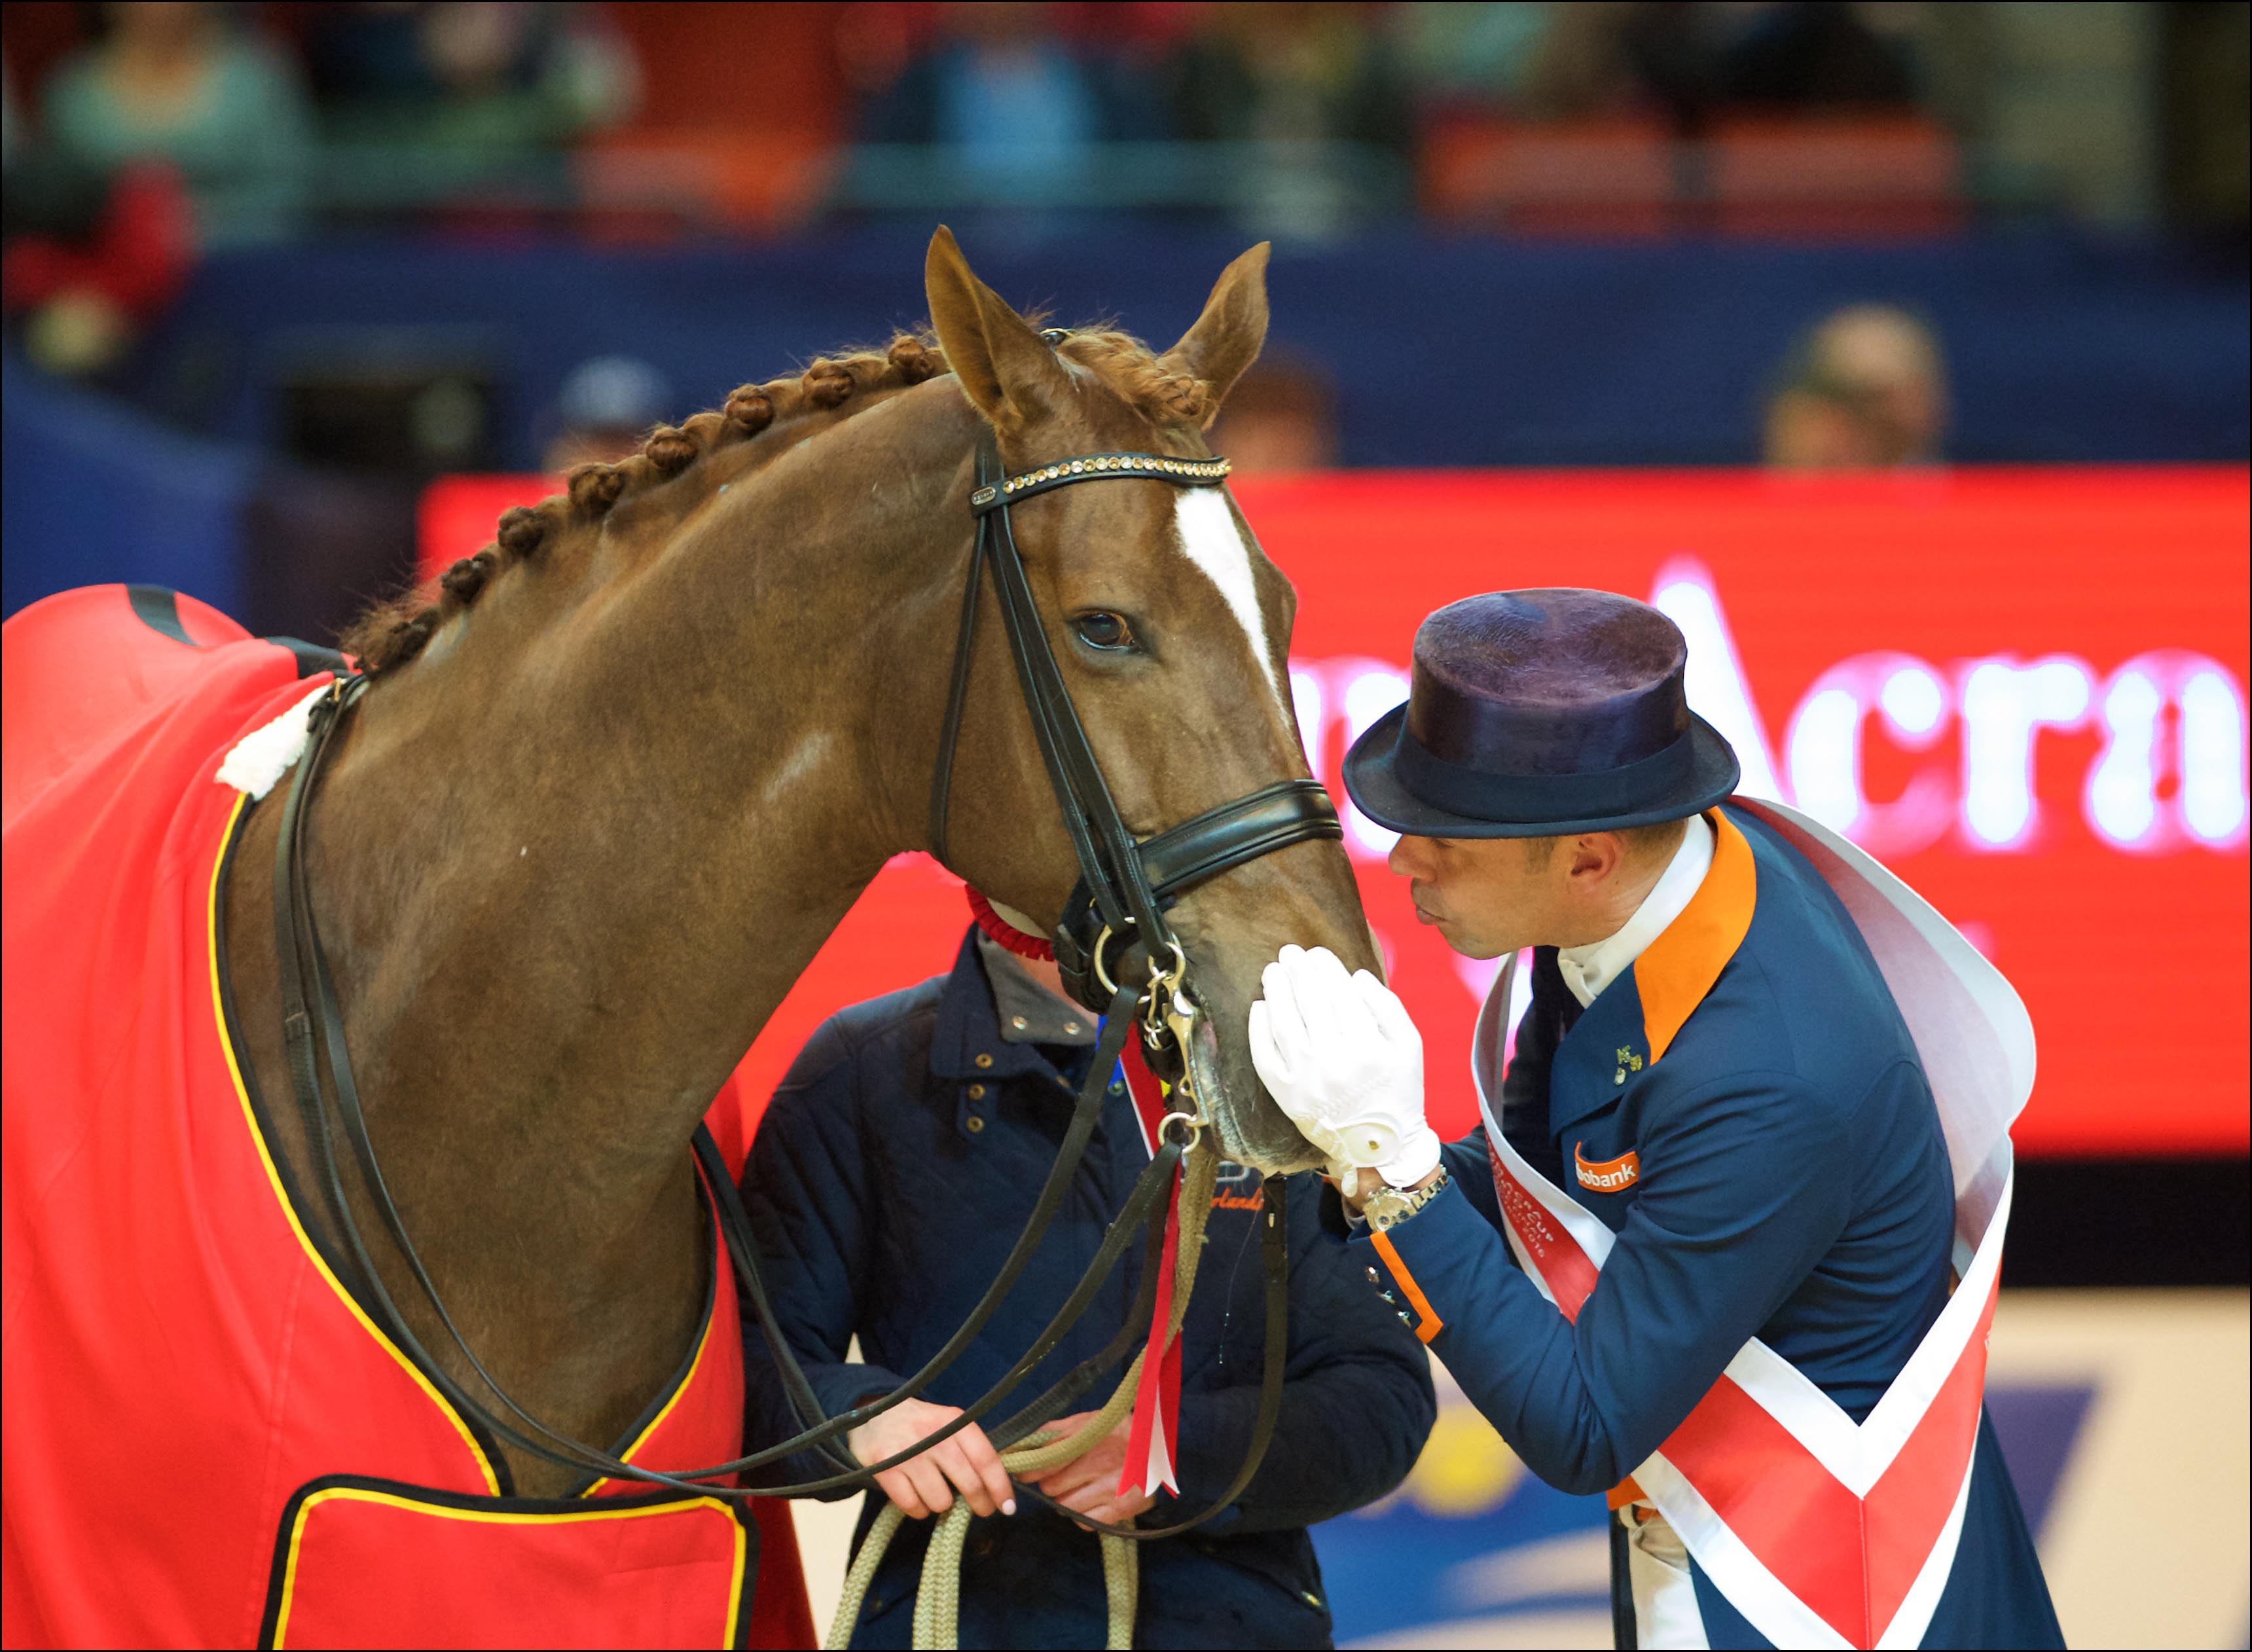 Hans Peter Minderhoud and Glock's Flirt enjoy a #TwoHearts moment after claiming the Reem Acra FEI World Cup™ Dressage 2016 title at Gothenburg (SWE) last March. © Arnd Bronkhorst/FEI